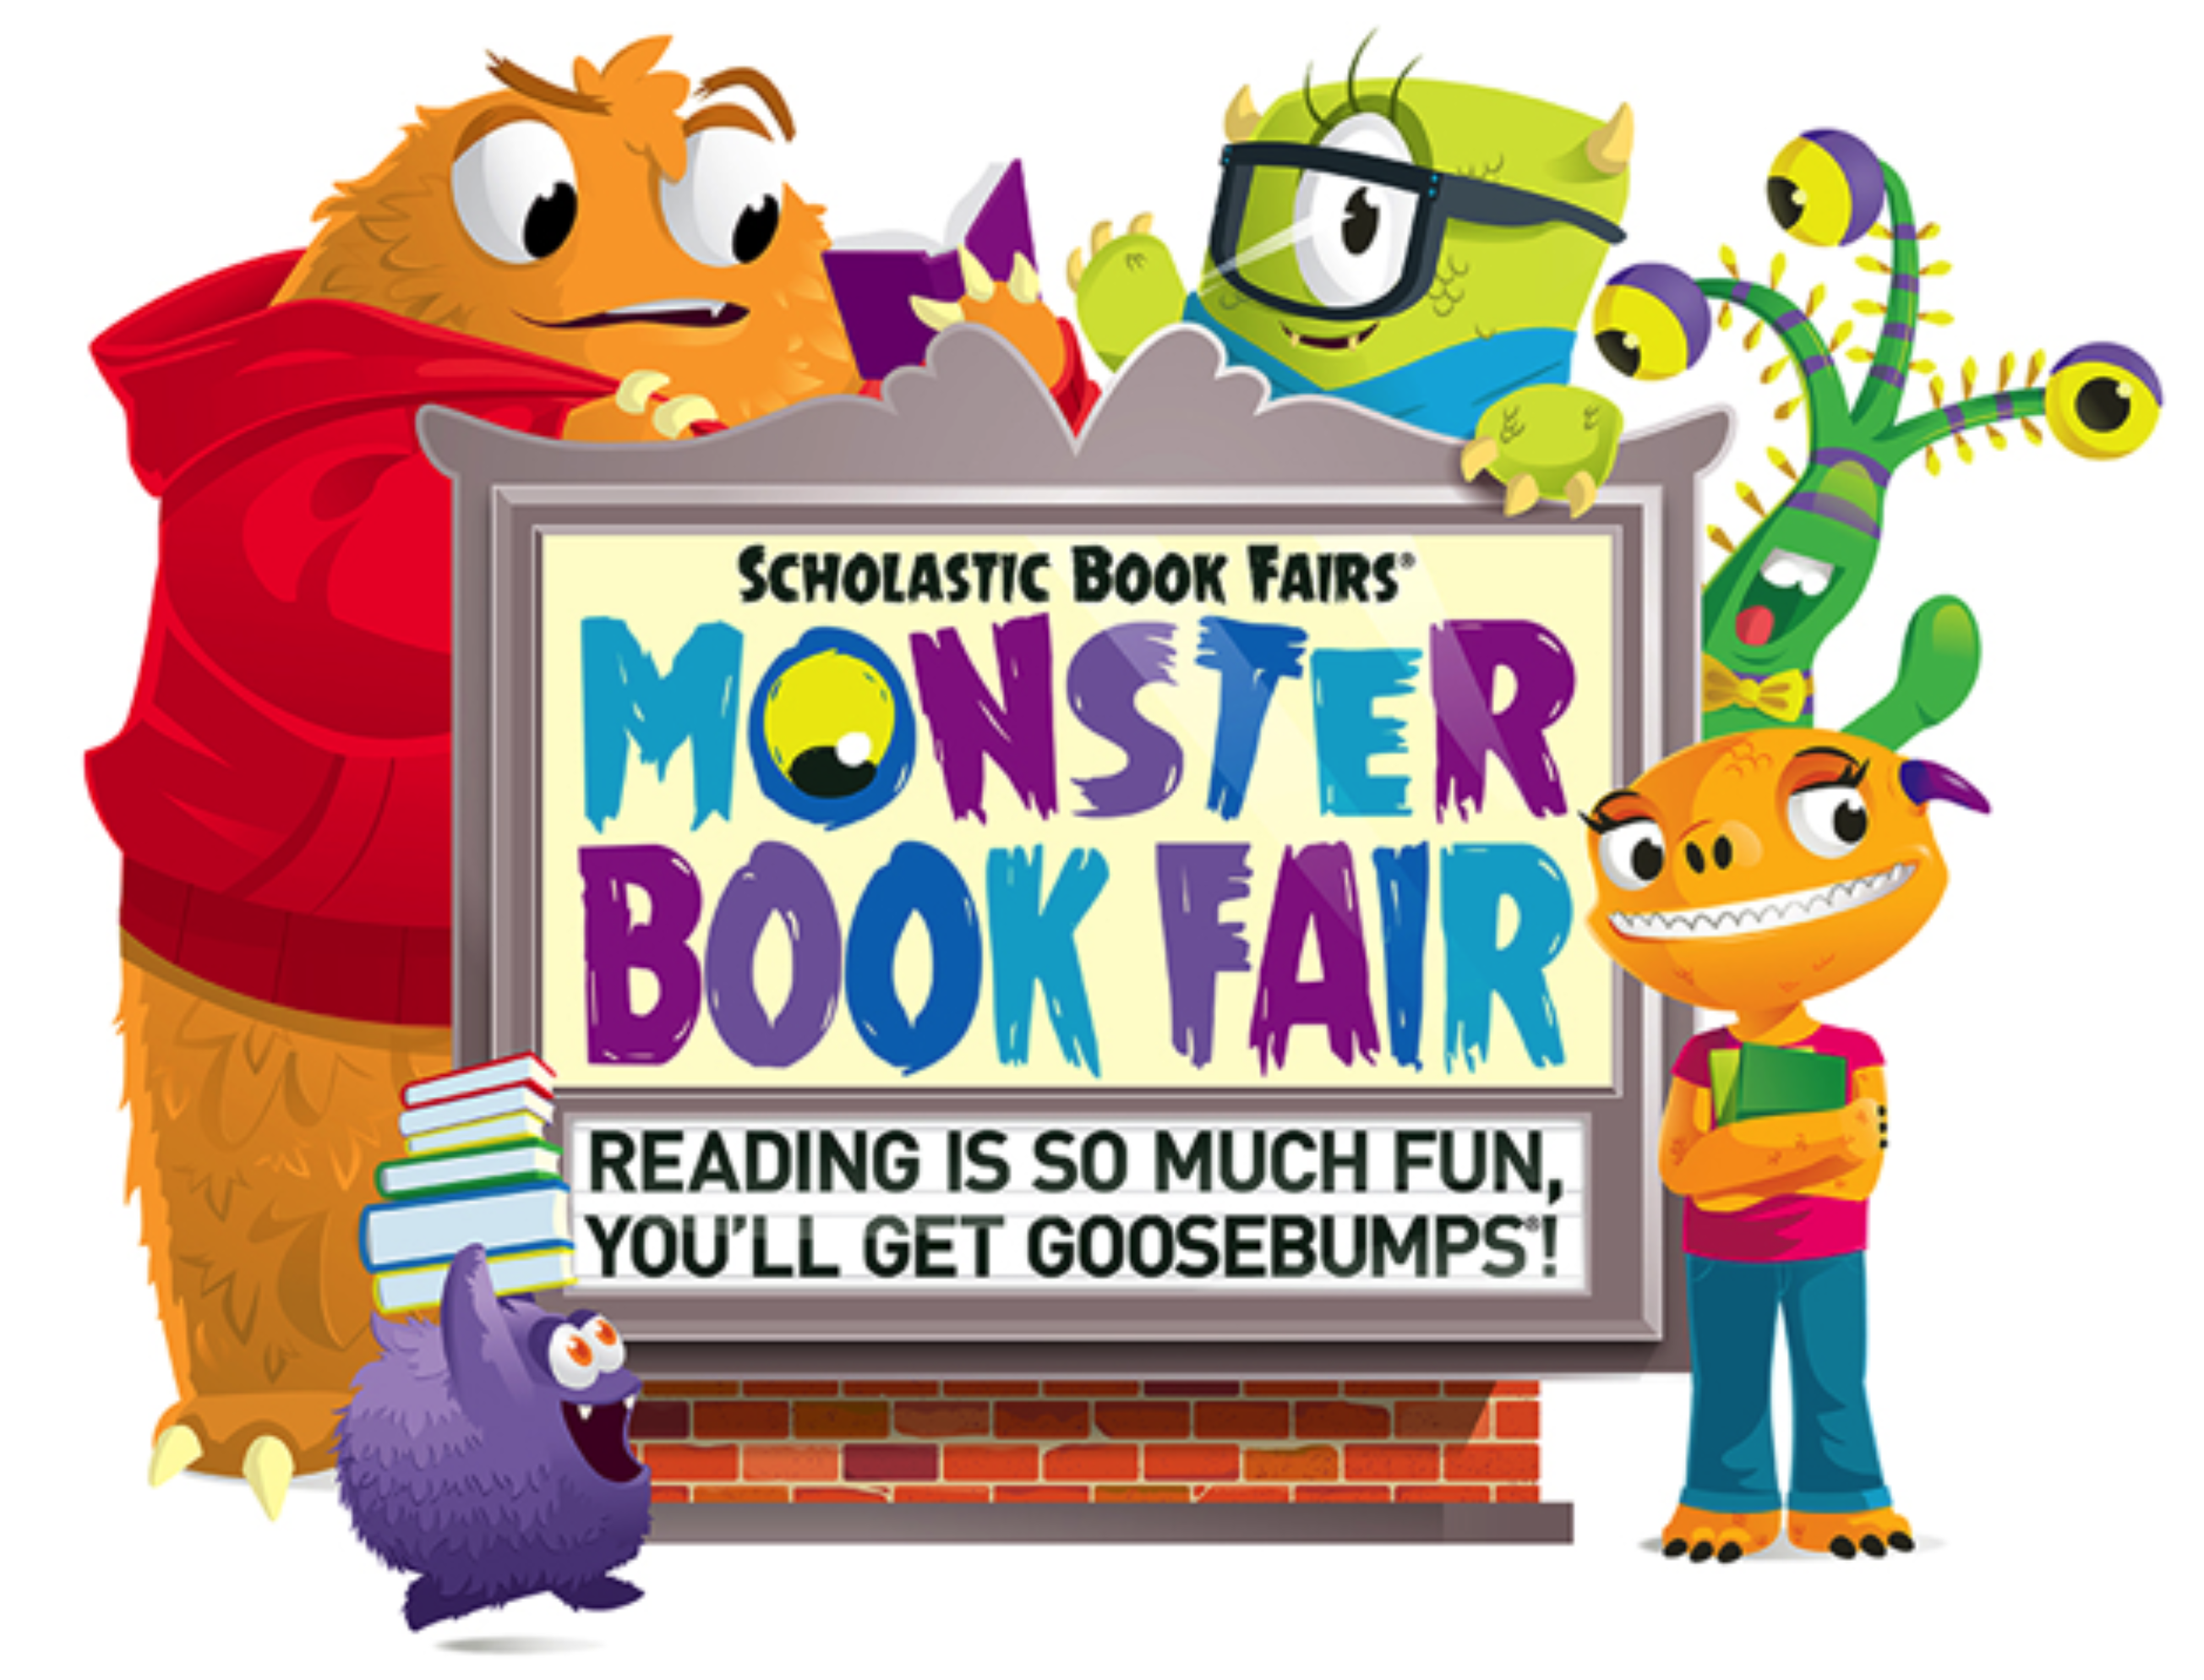 Monster Book Fair: Reading Is So Much Fun, You'll Get GOOSEBUMPS.